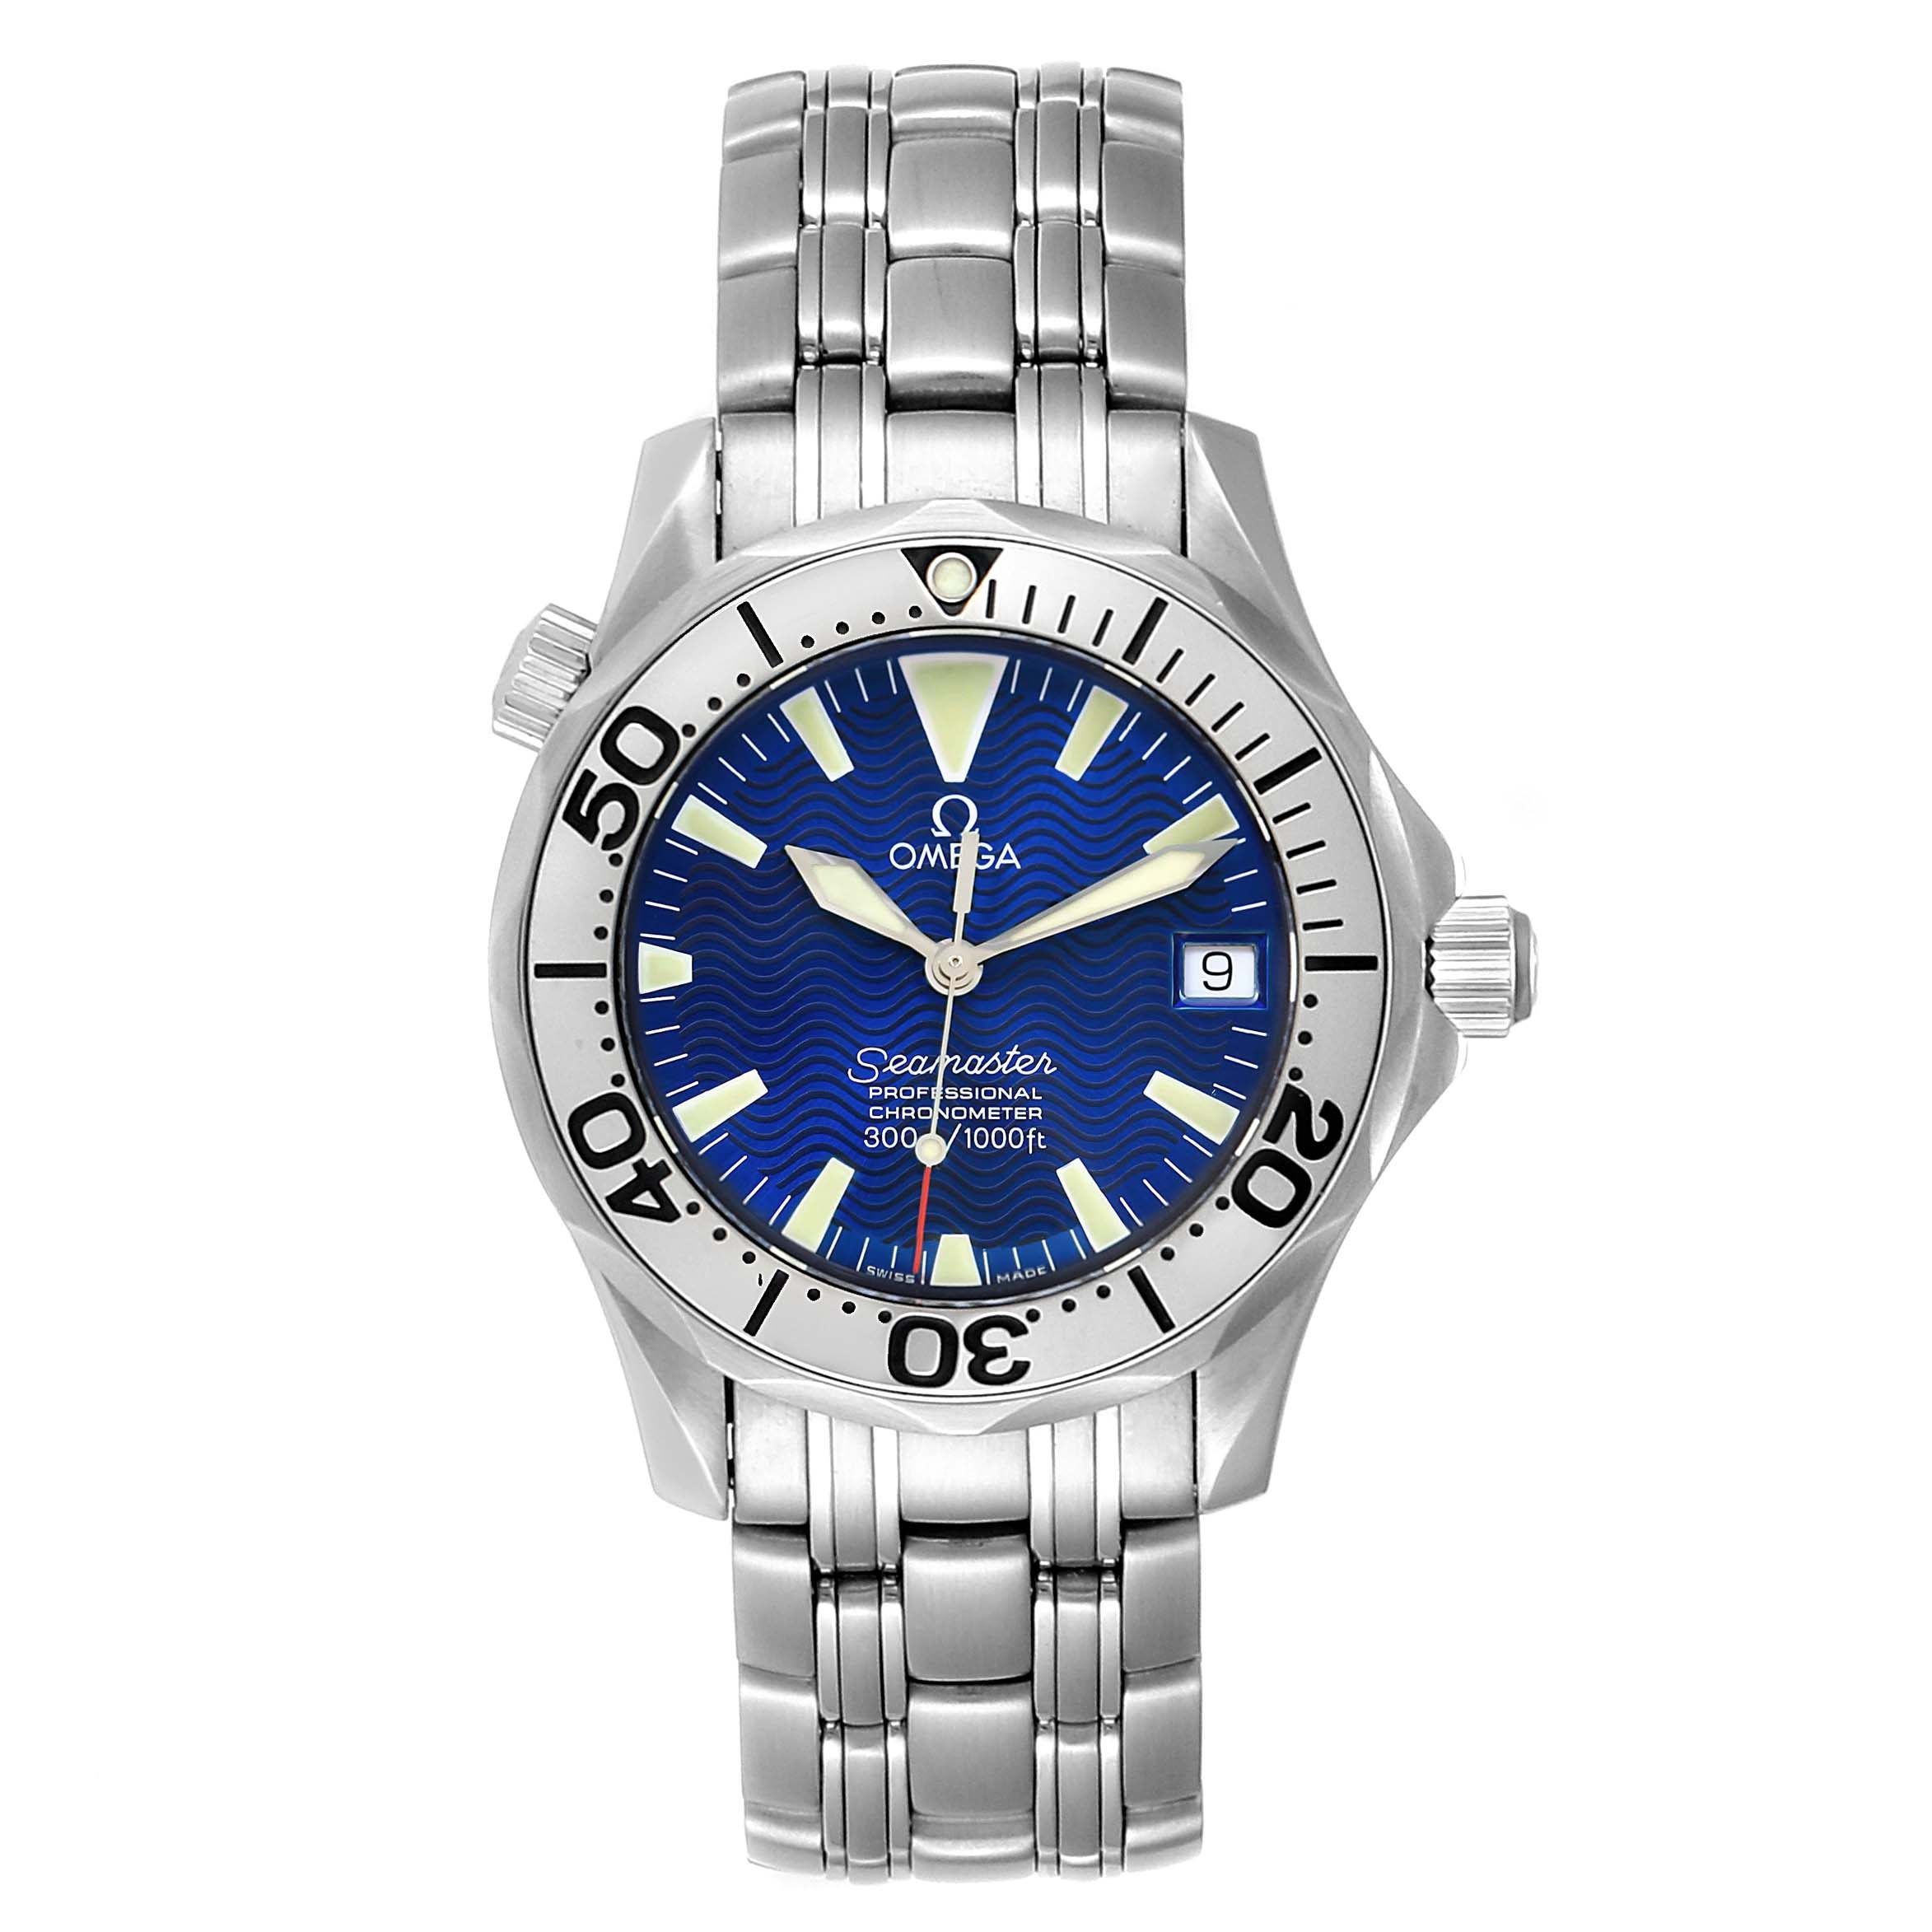 Omega Seamaster Midsize Steel Electric Blue Dial Watch 2554.80.00 SwissWatchExpo